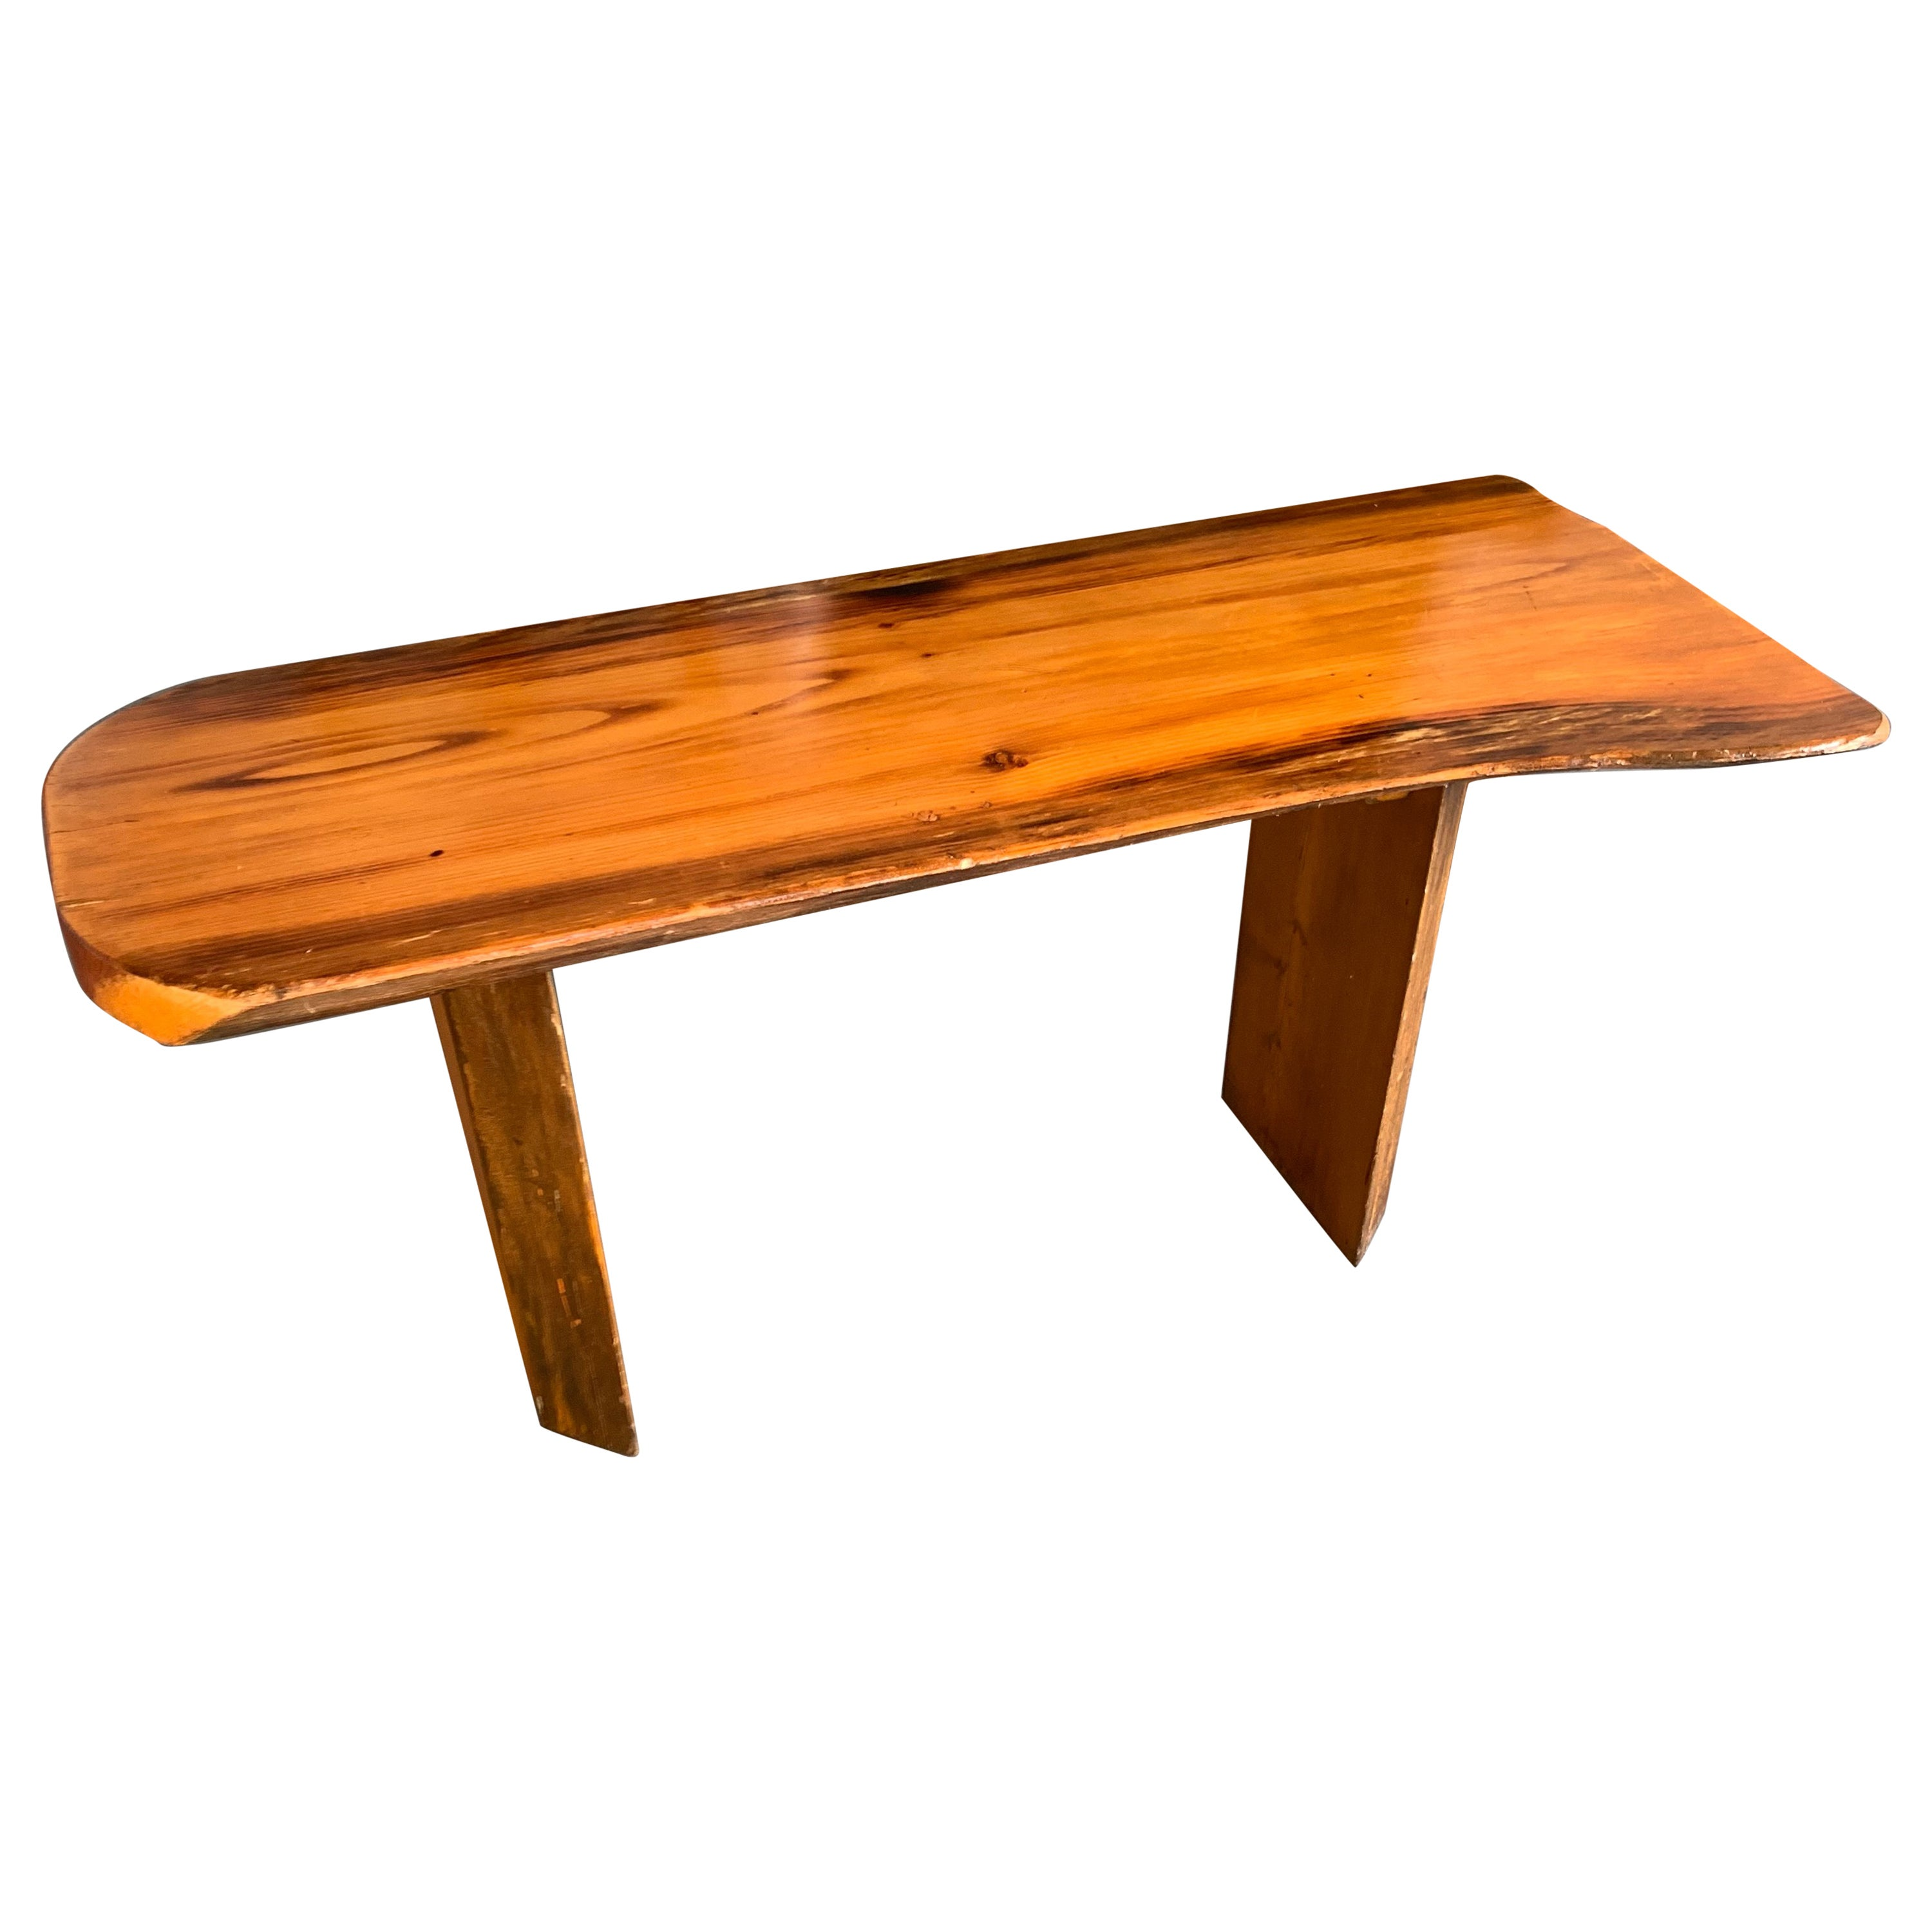 Small Californian Live Edge Bench in Solid Wood